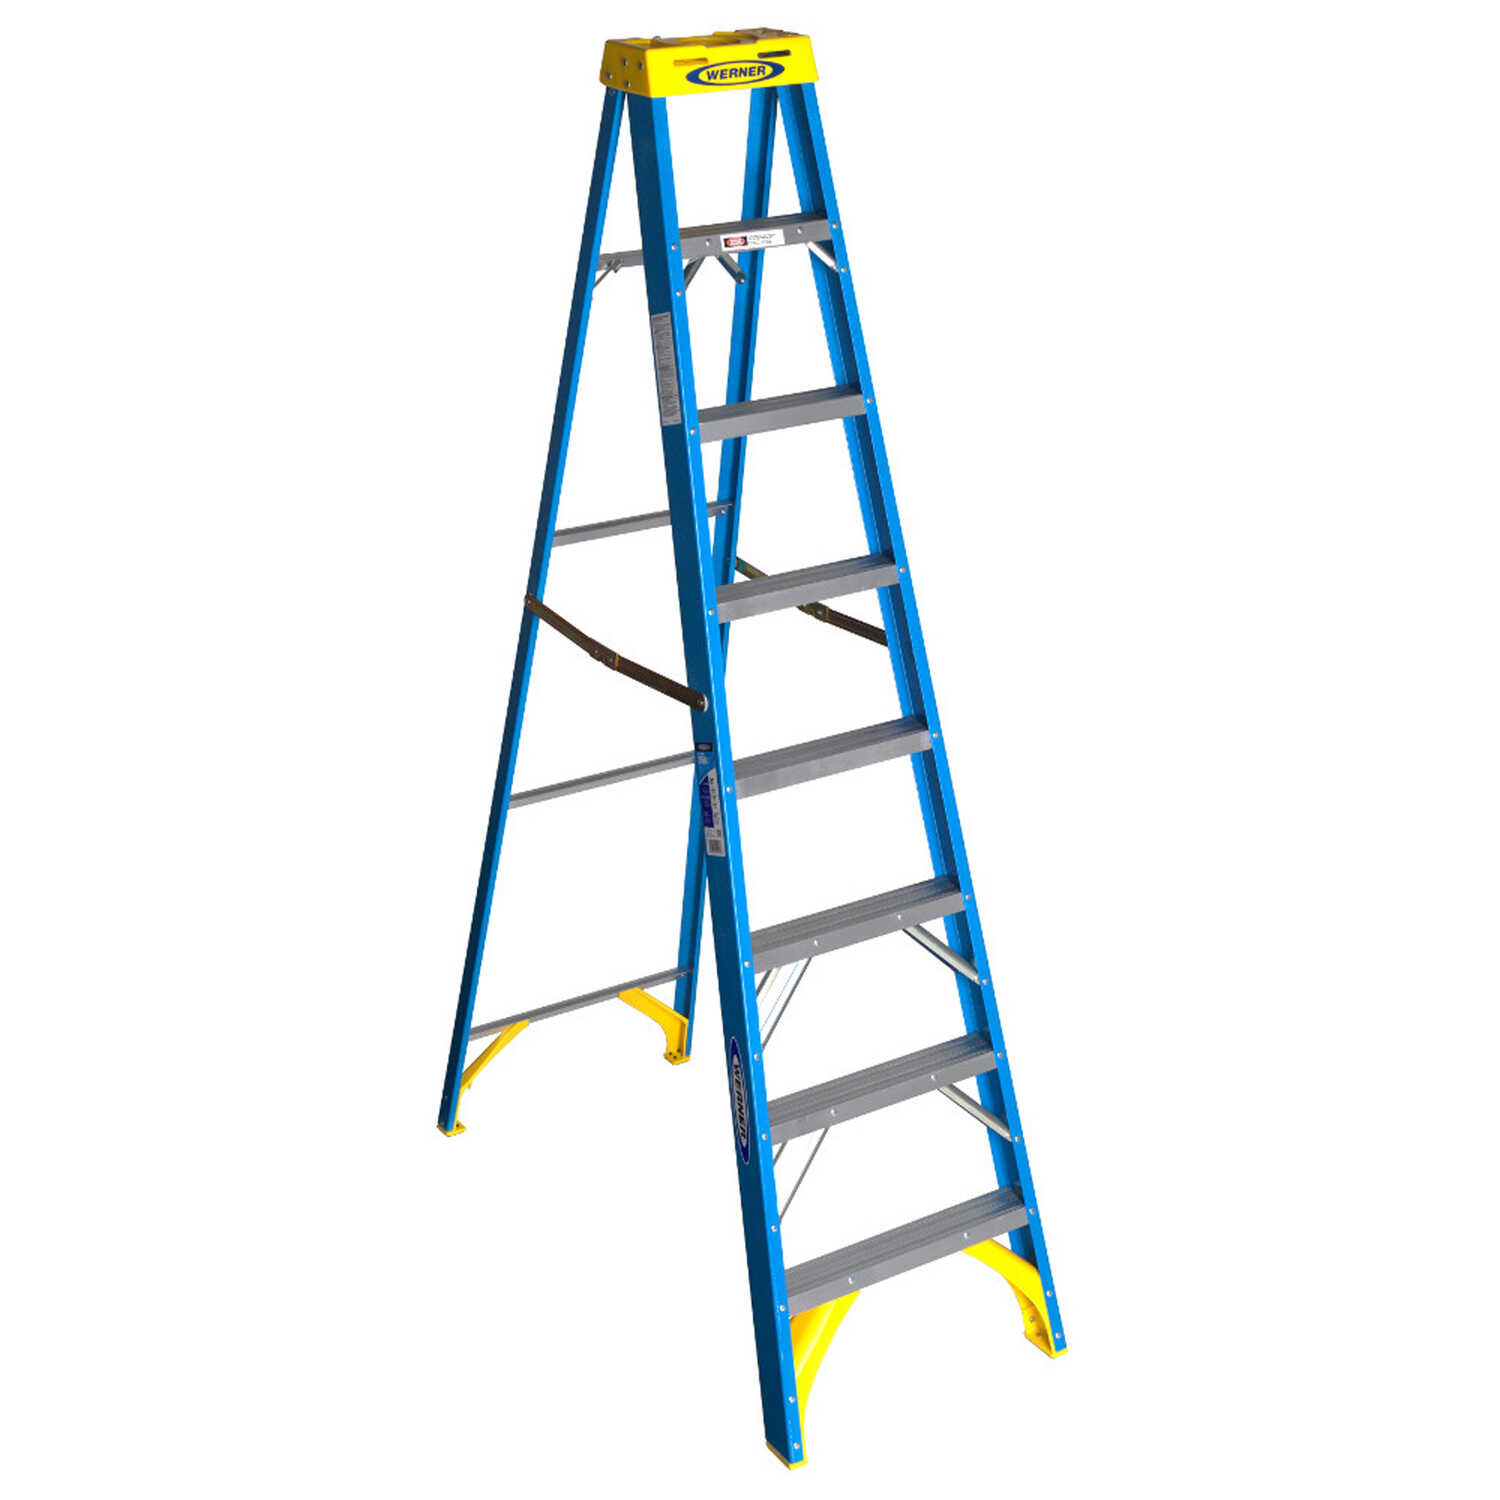 Werner  8 ft. H x 25 in. W Fiberglass  Type I  250 lb. capacity Step Ladder